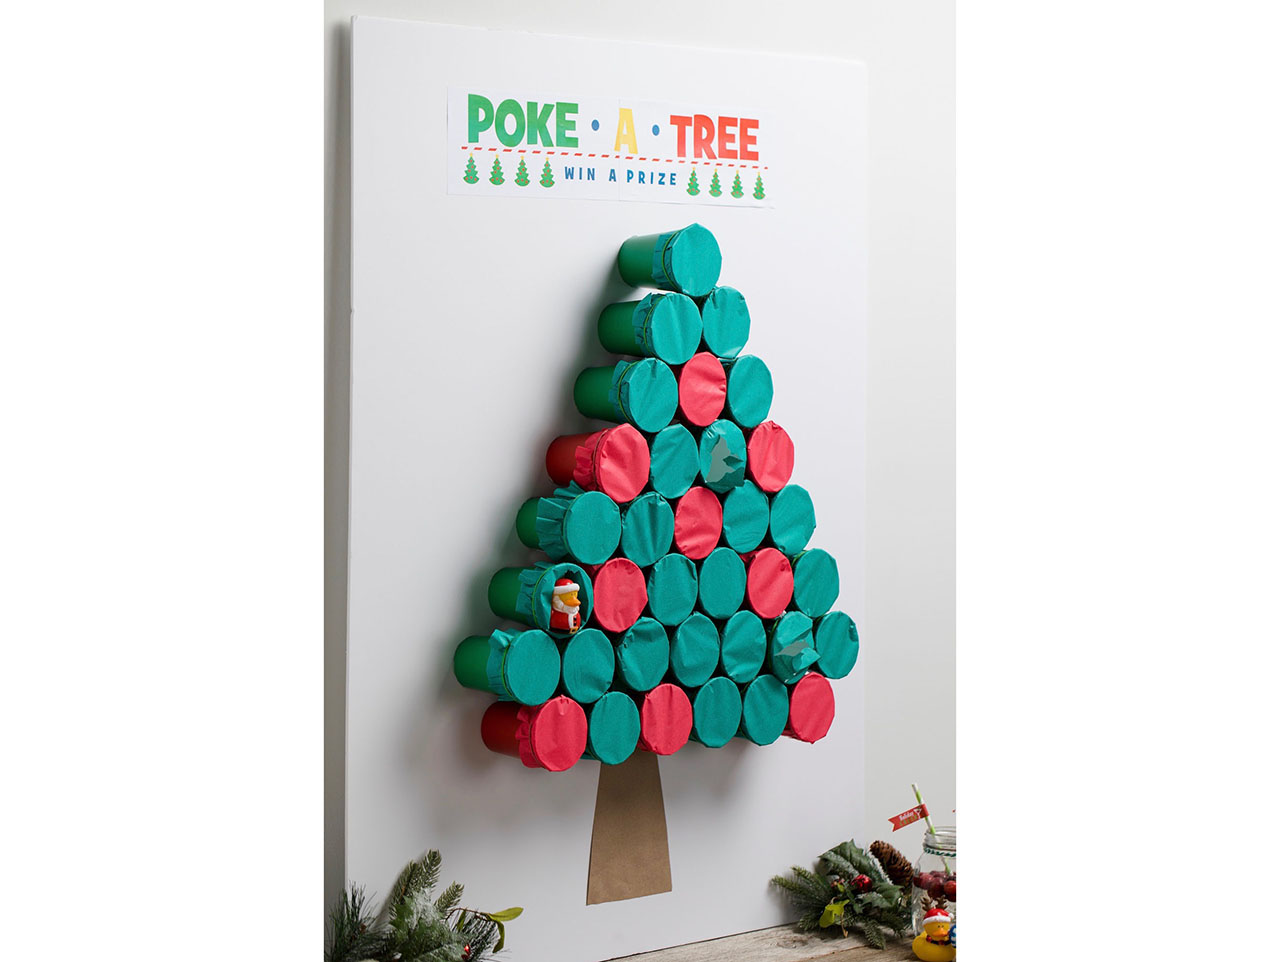 poke-tree-game-idea-project